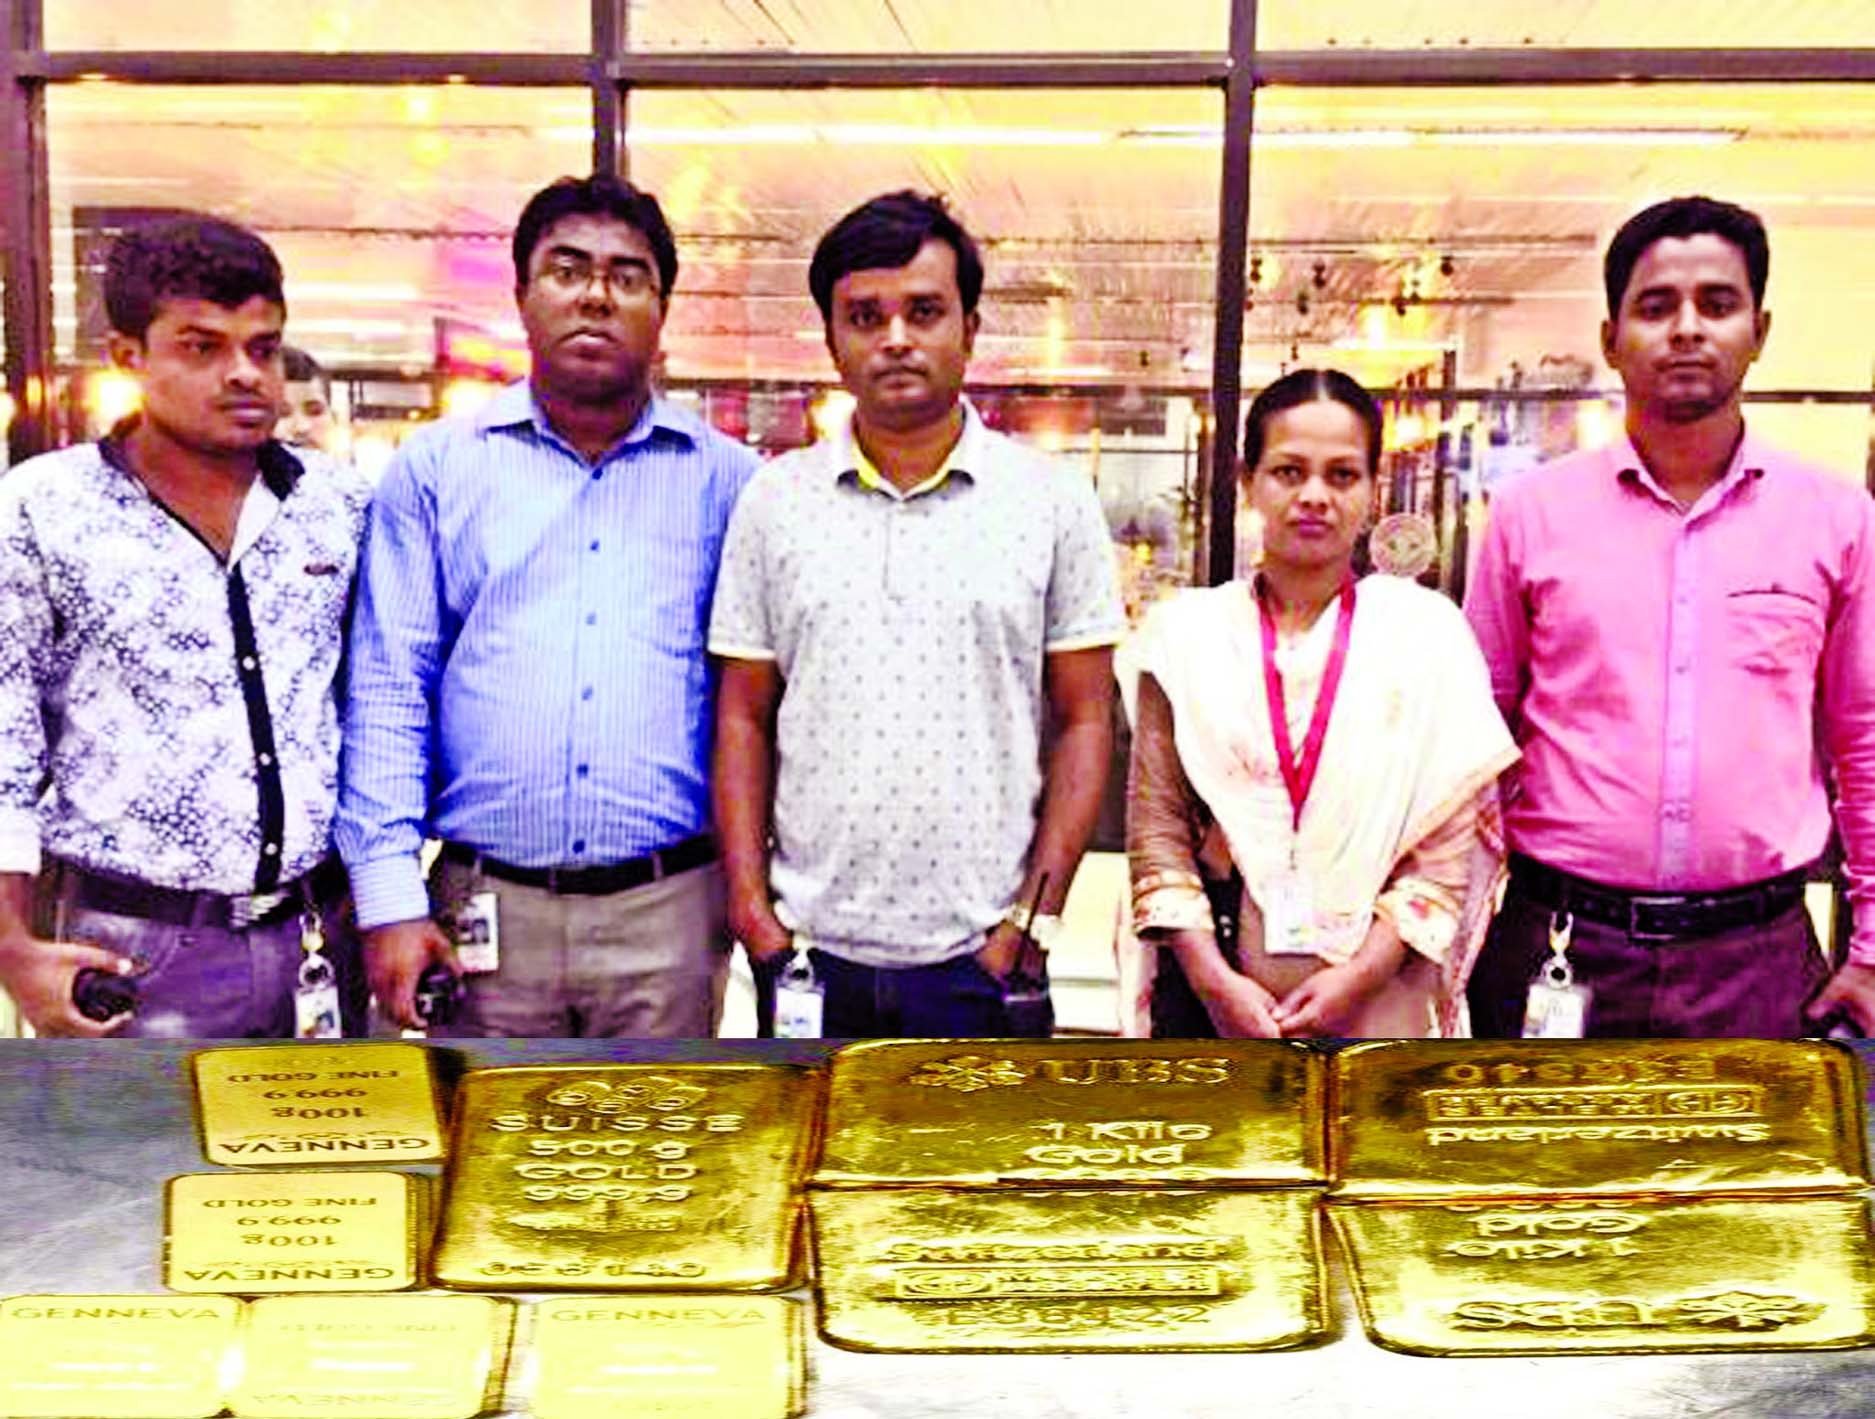 Customs Intelligence found gold bars weighing about 3 Kgs in a waste-carrying basket from a toilet at HSIA on Monday.